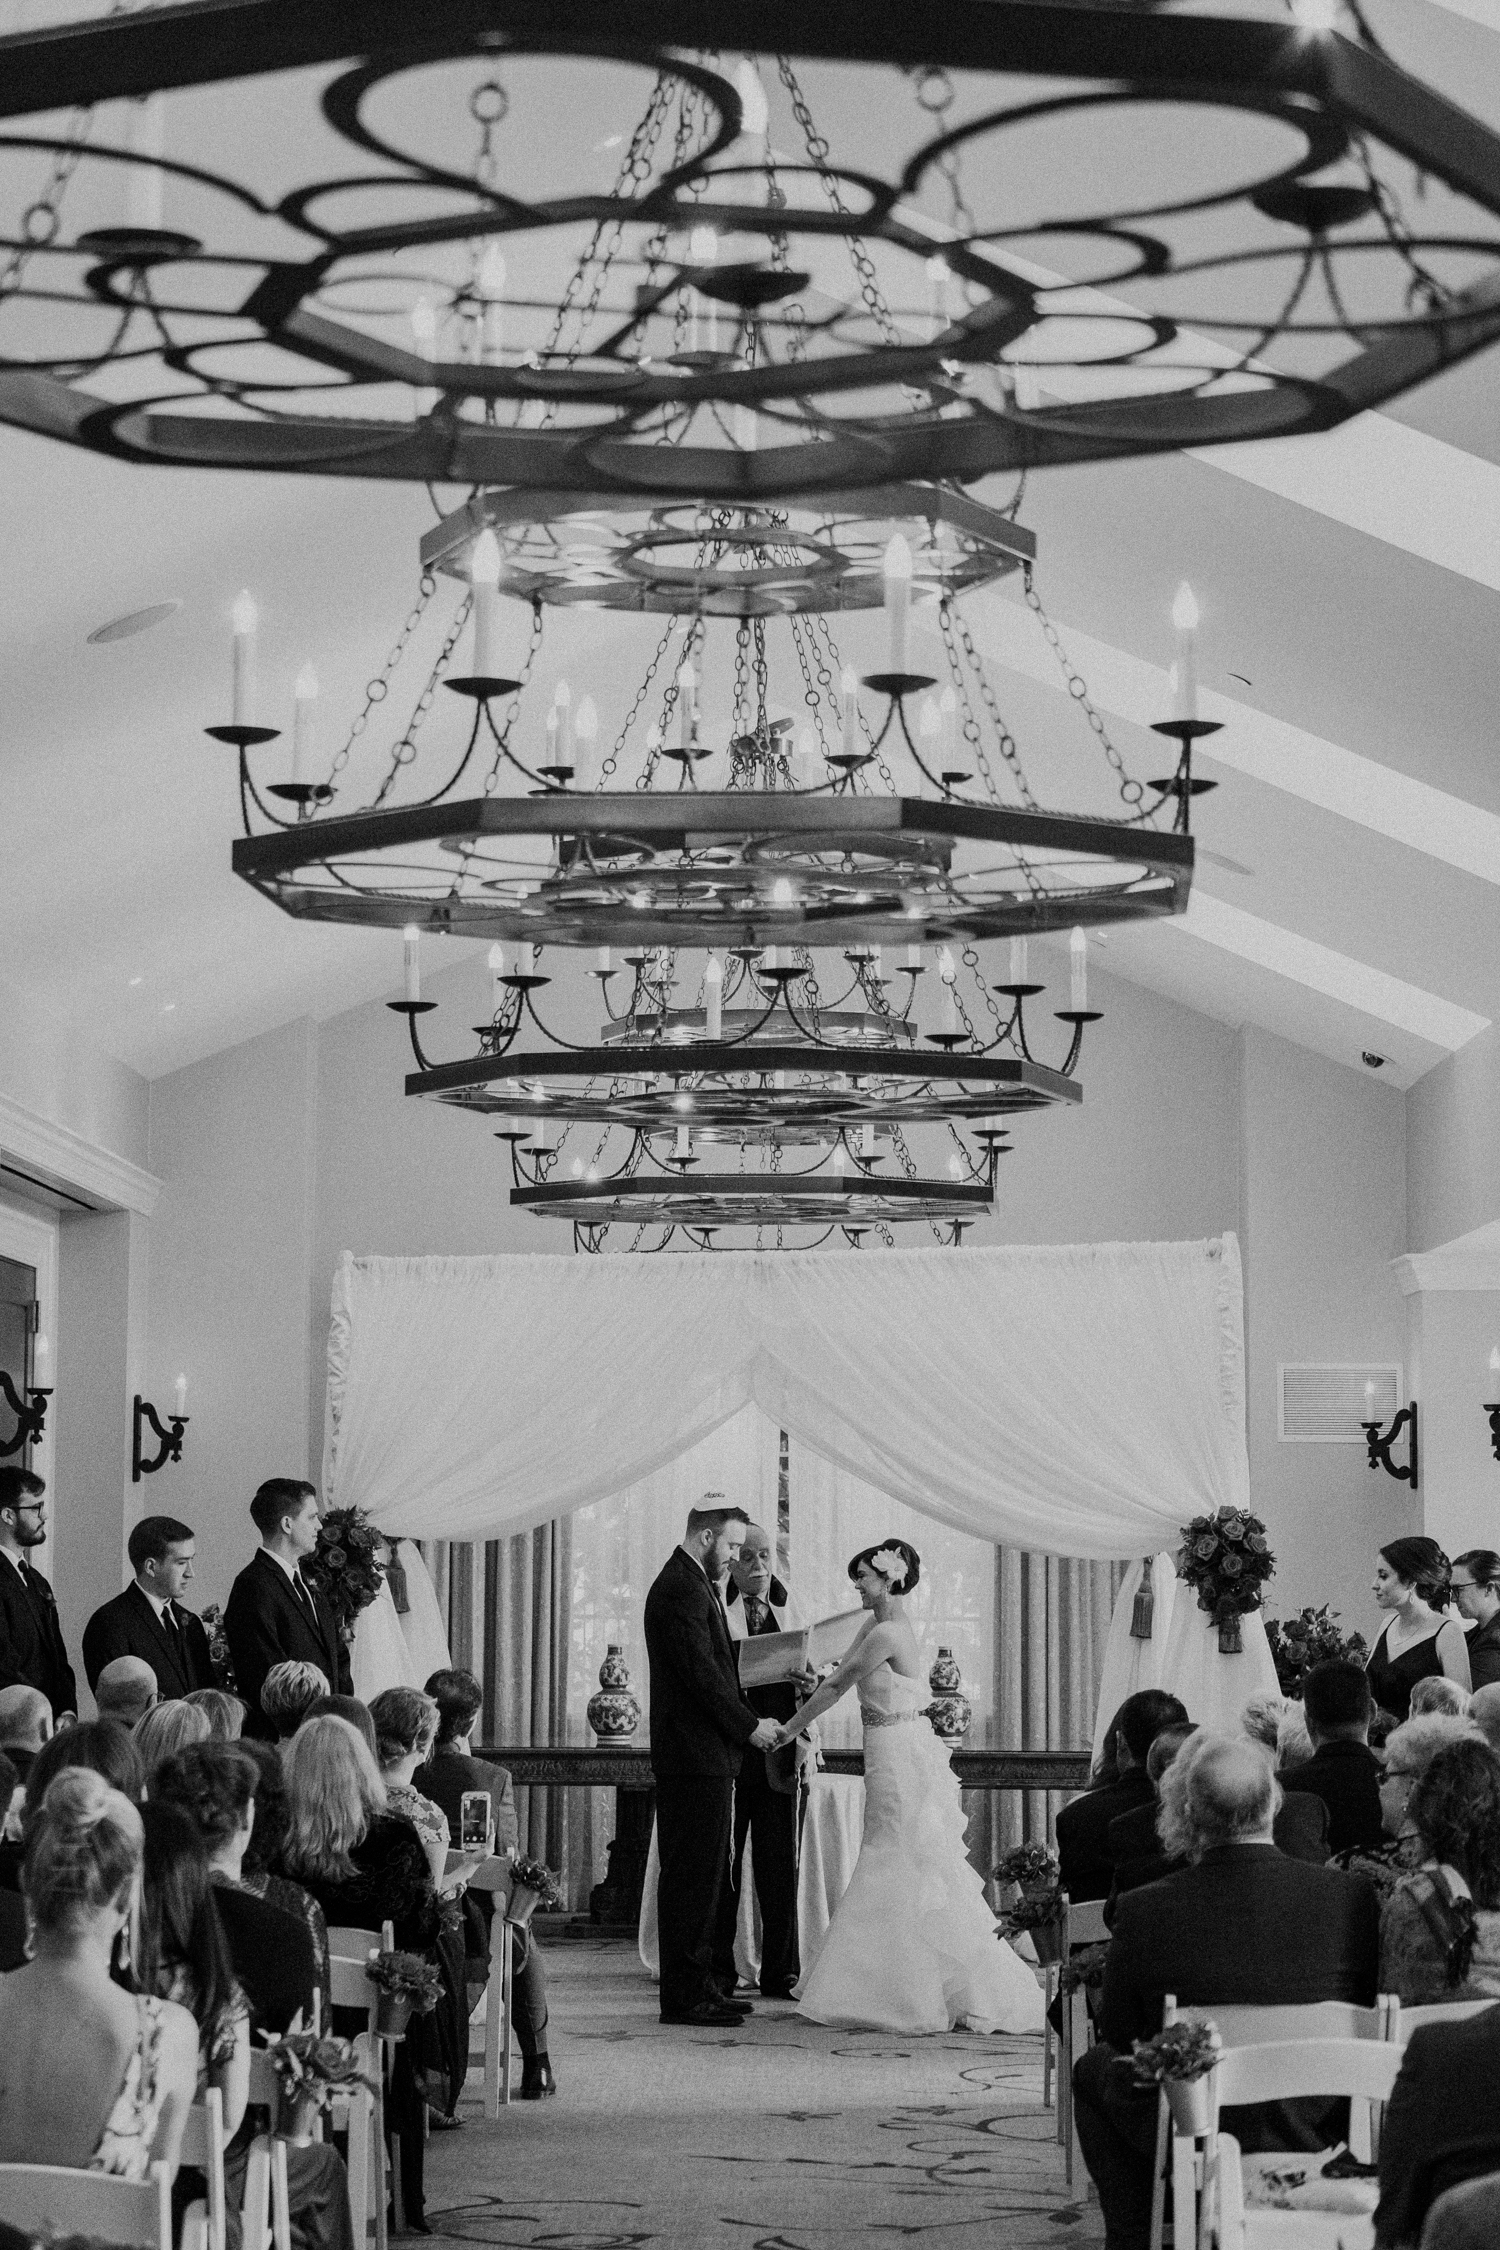 Indoor salamander resort wedding ceremony under chandeliers